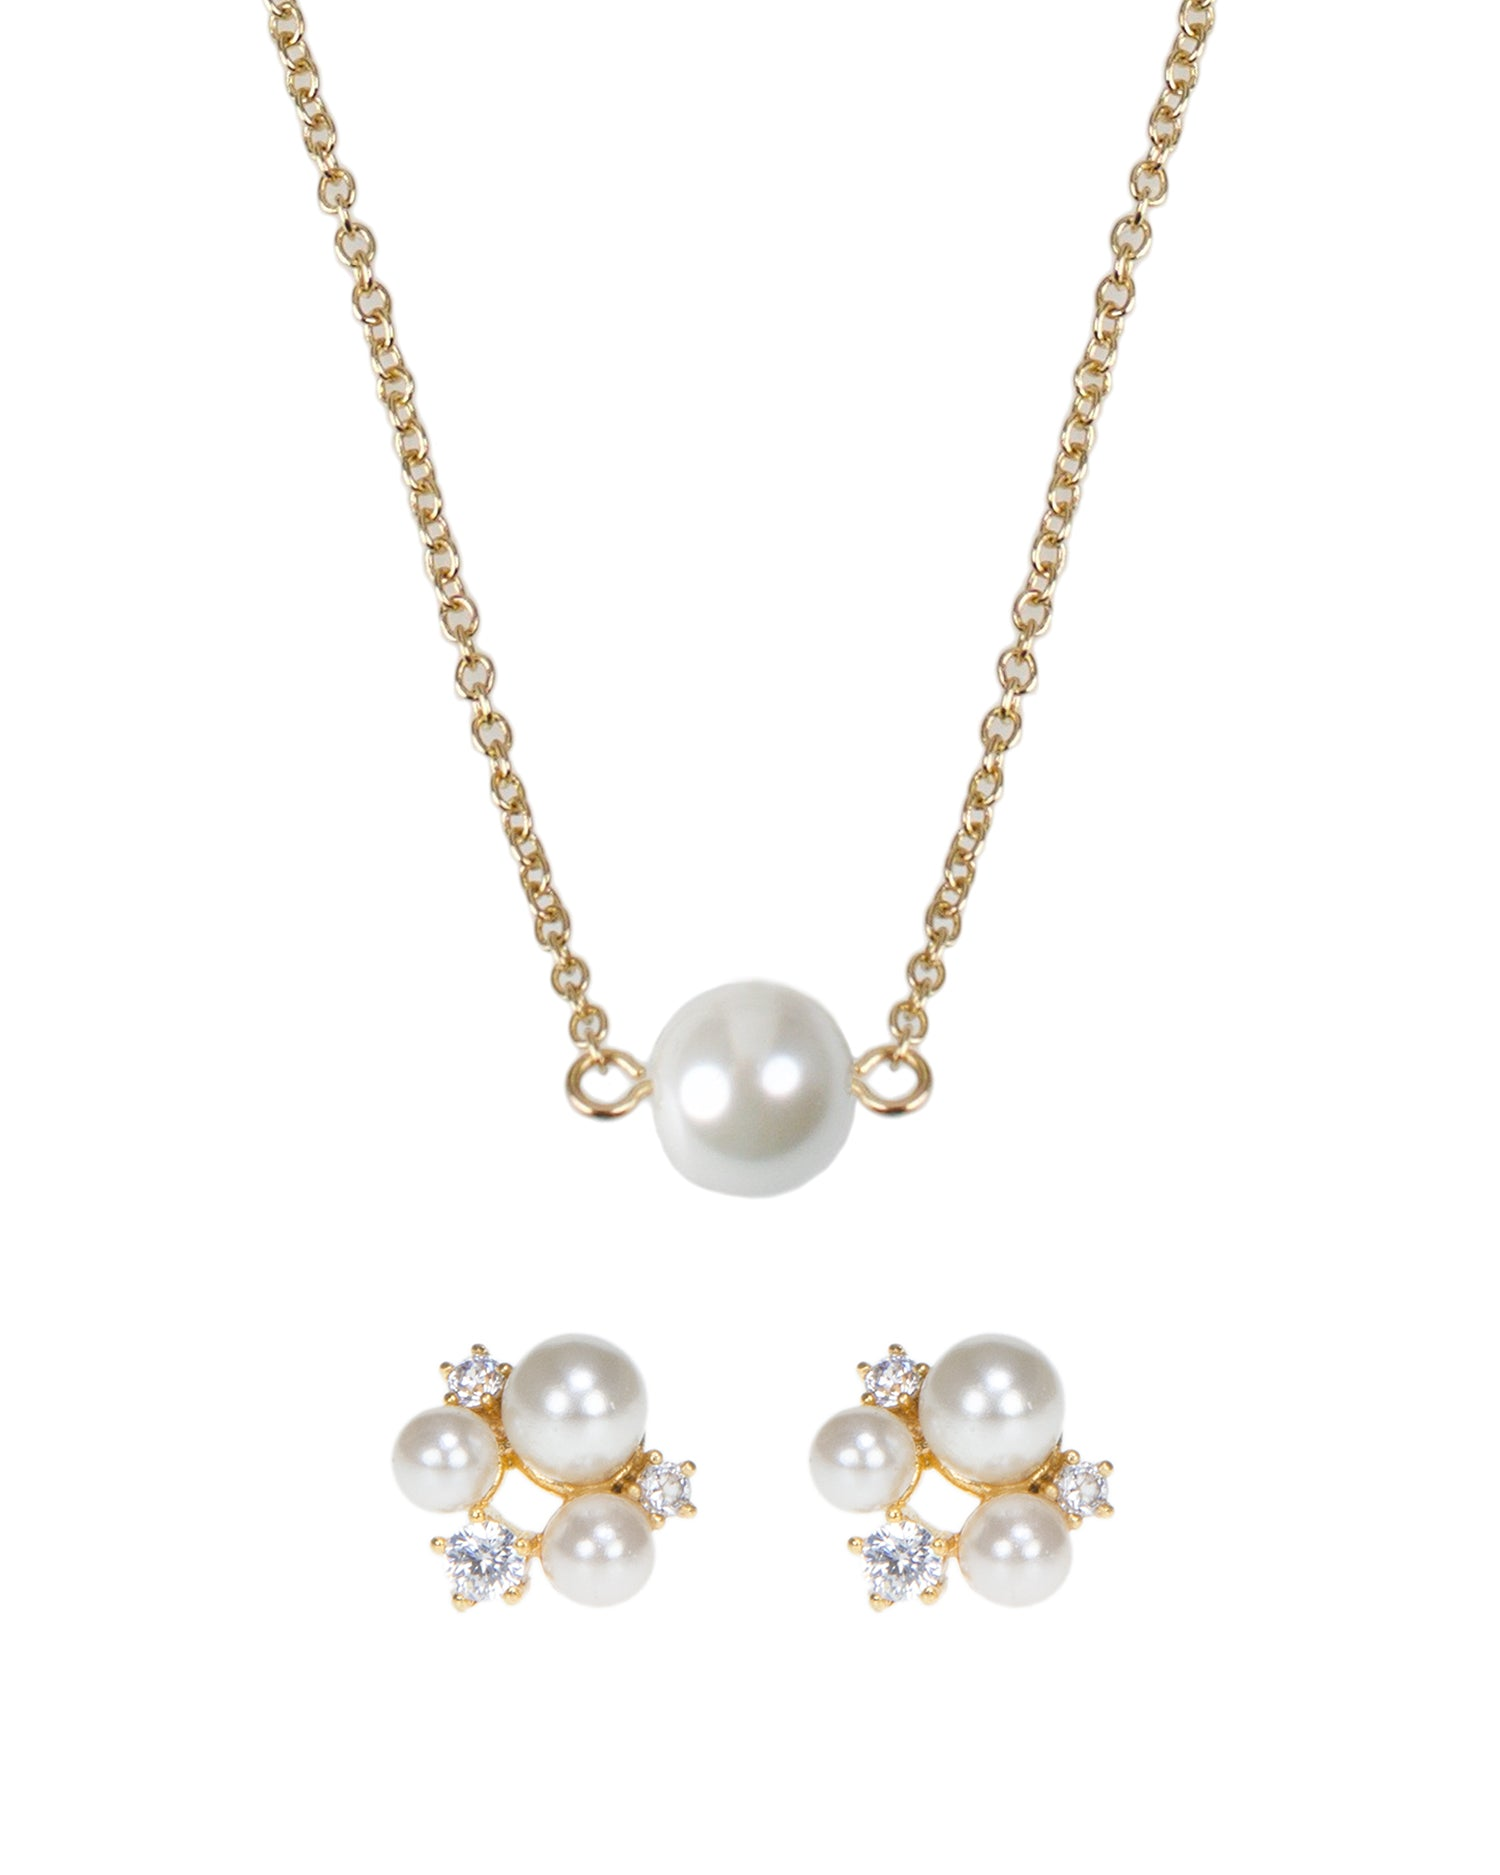 Glass Pearl Pendant Necklace with CZ and Pearl Cluster Post Earring Set